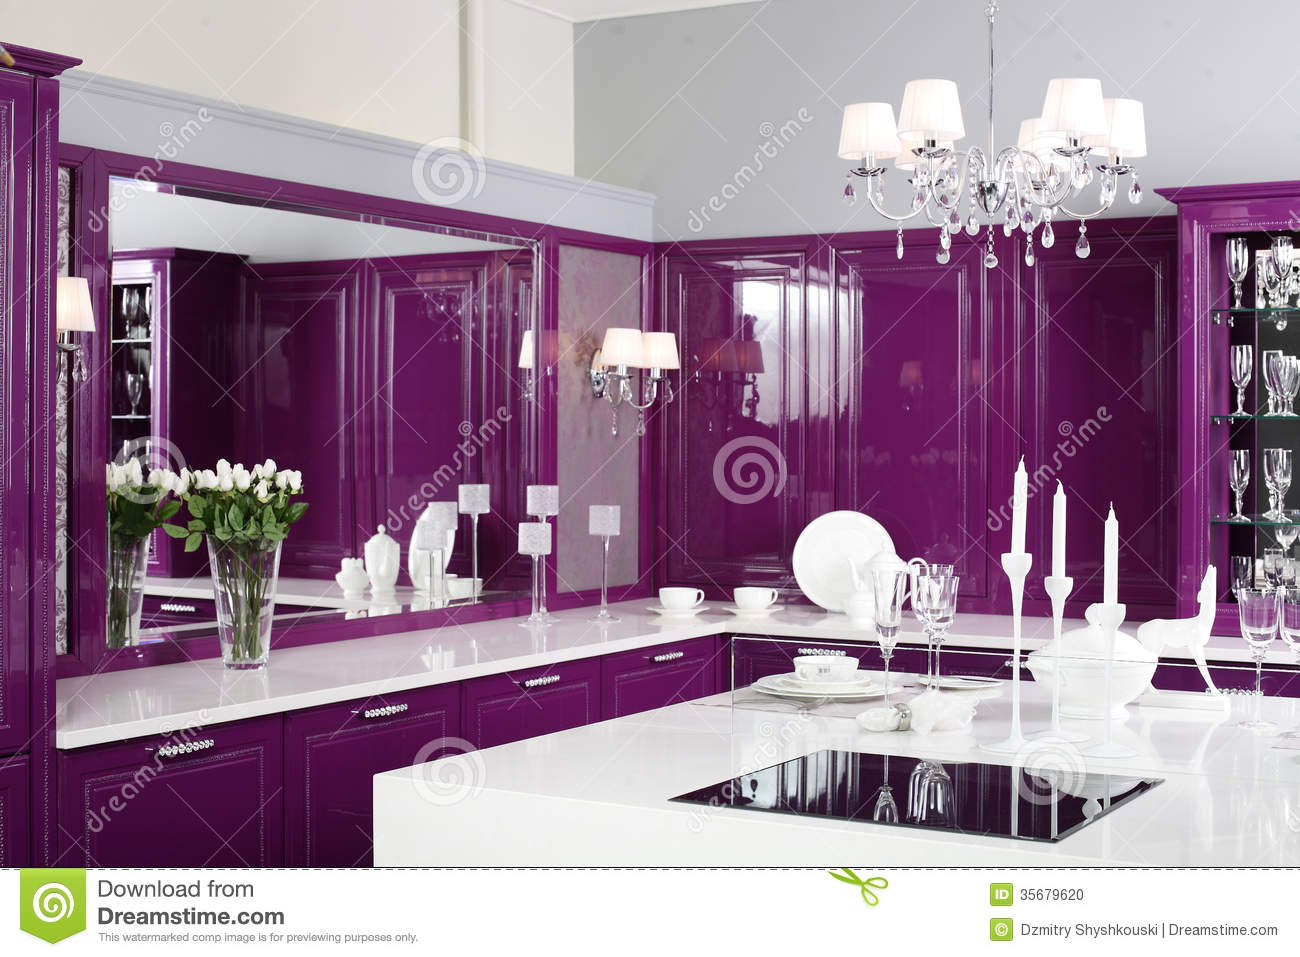 Modern purple kitchen with stylish furniture stock photo image of house design 35679620 - Furnitur photos ...